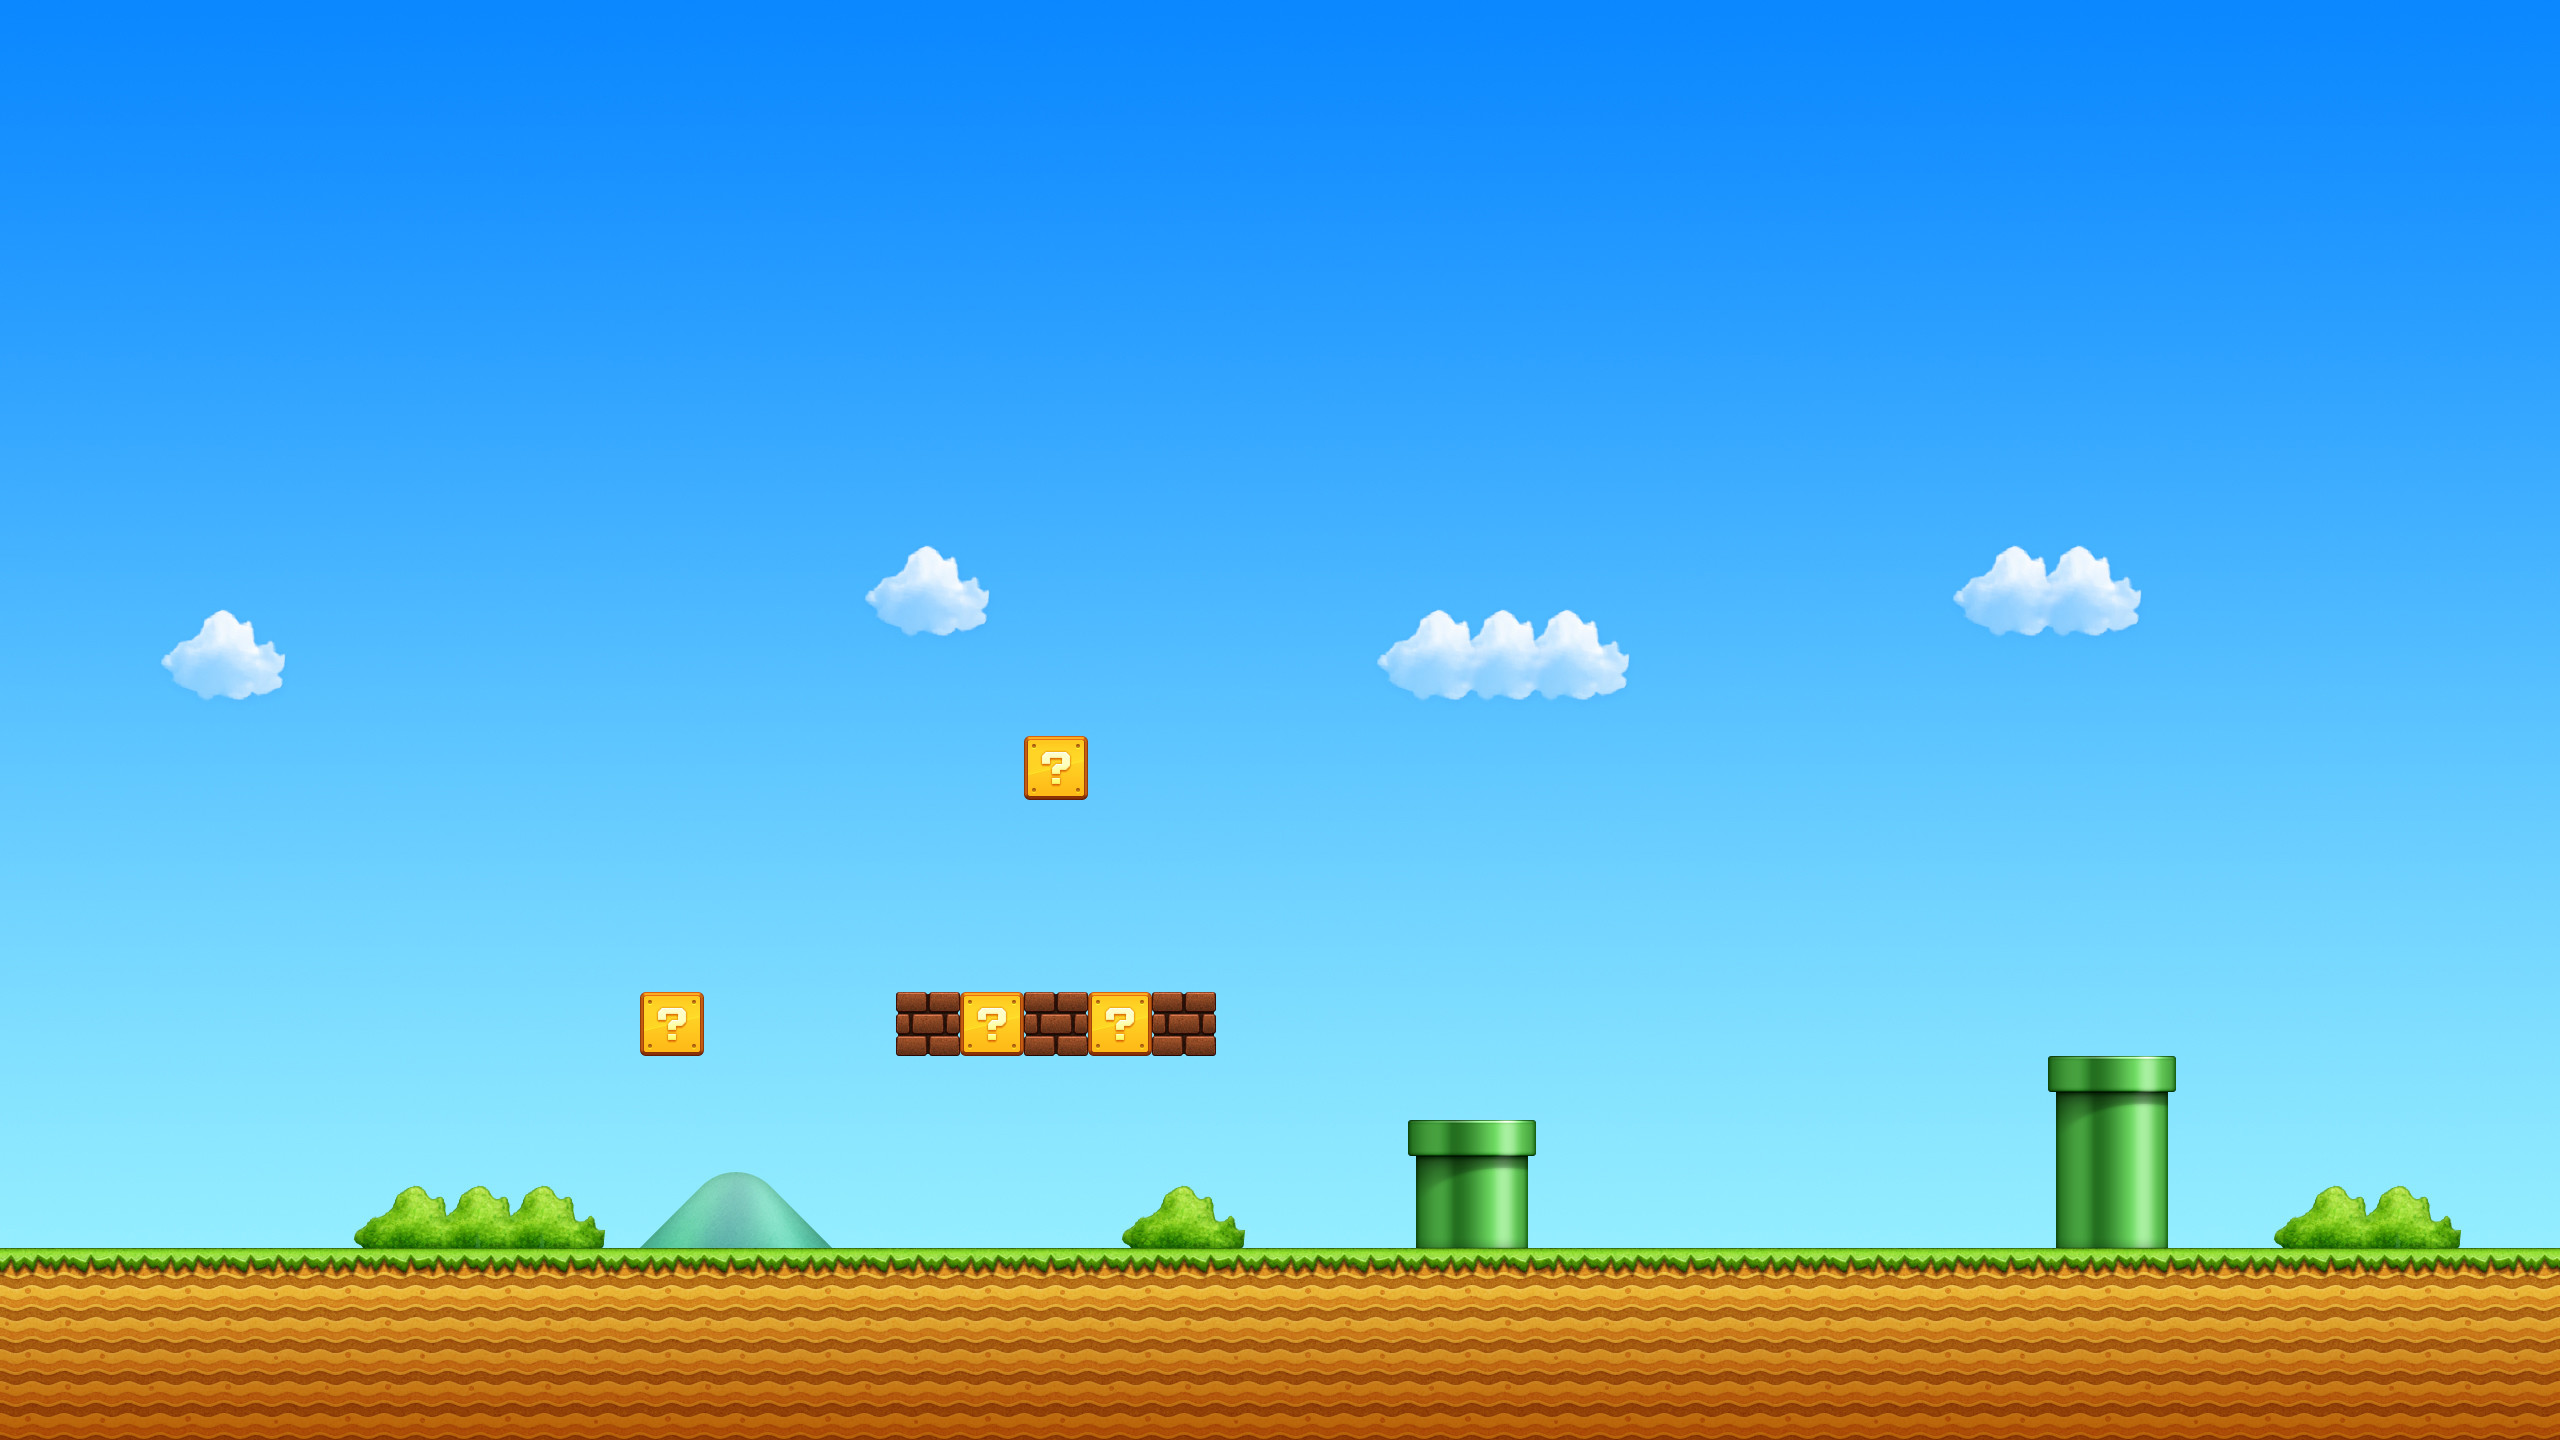 Retro Game Wallpapers For Android For Desktop Wallpaper 2560 x 1440 px 1.08  MB 50s classic